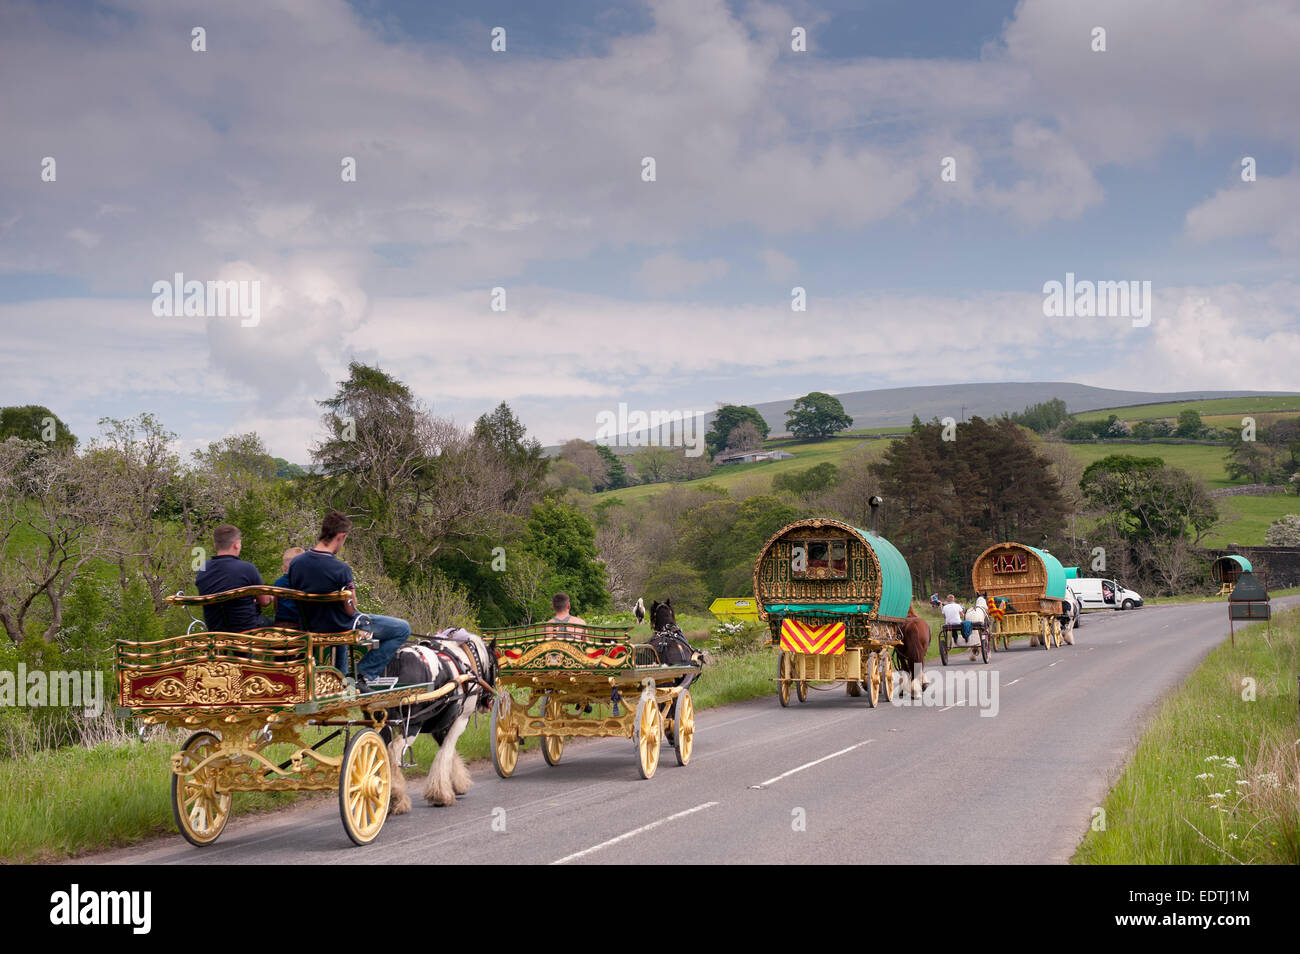 Horse drawn caravans heading towards the horse fair at Appleby in Westmorland along the A683 between Sedbergh and - Stock Image